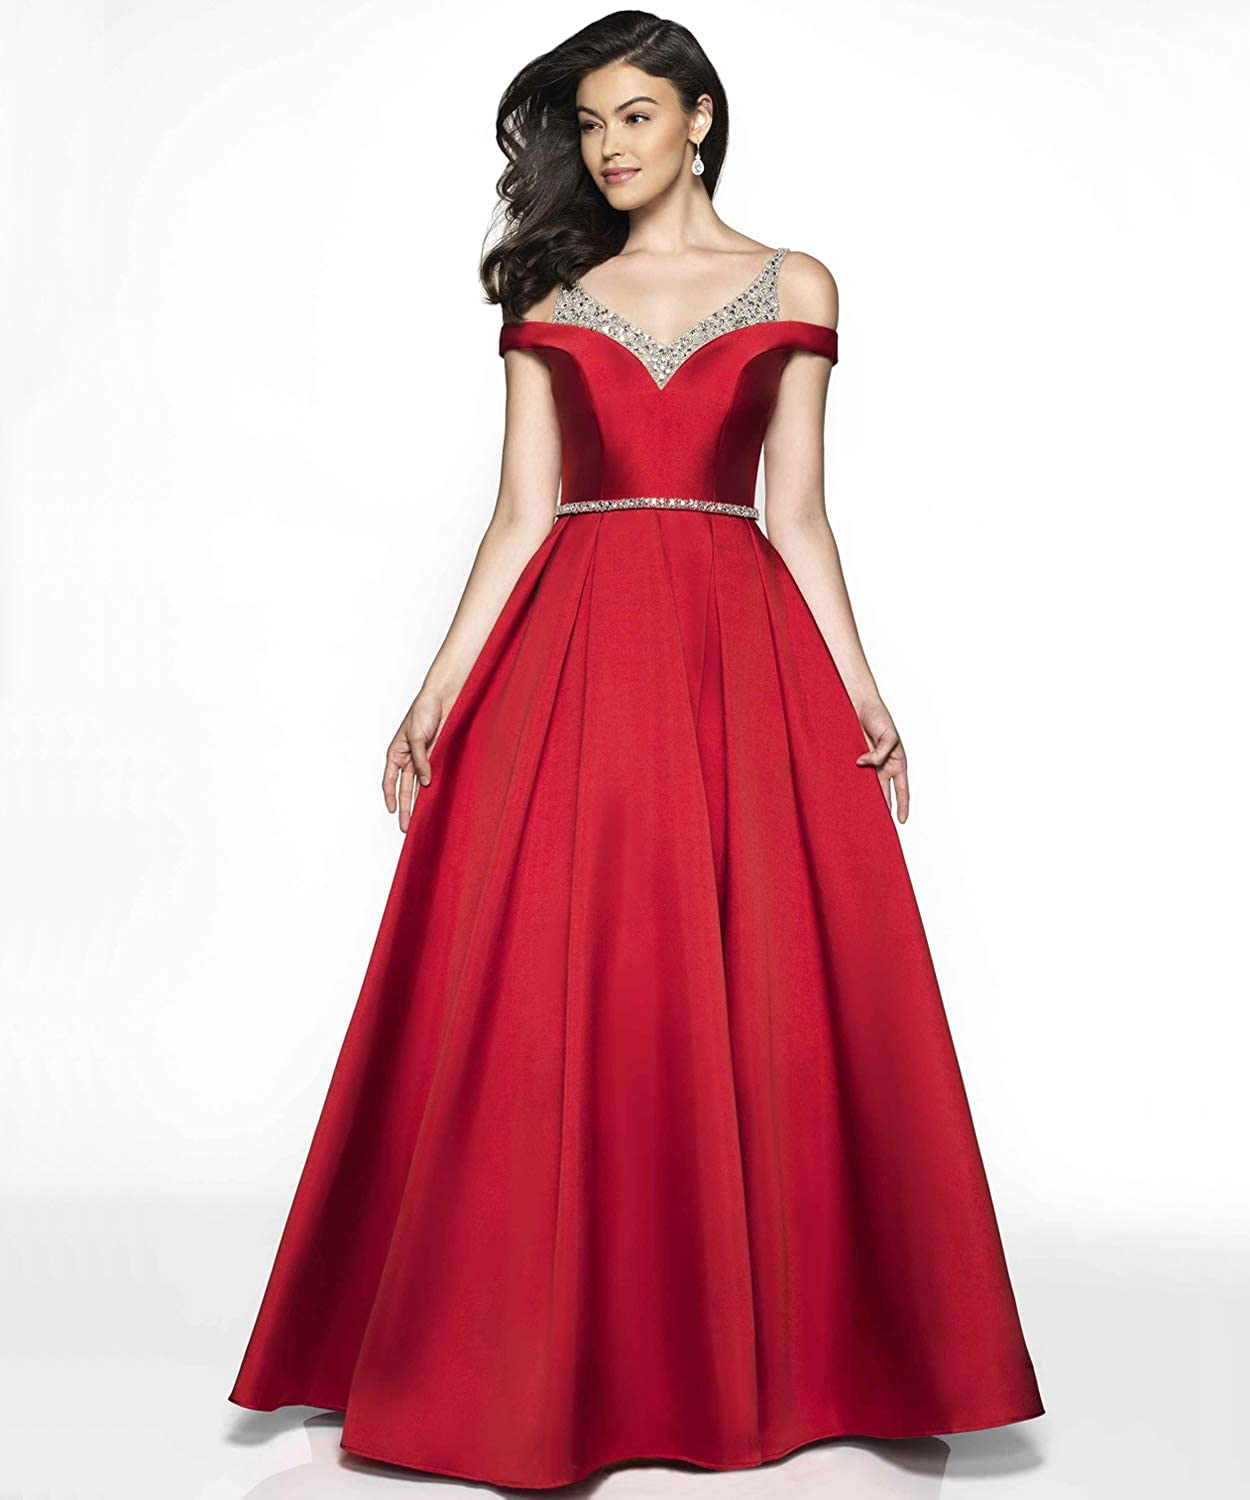 af895b7a7d2 YGSY Women s Cold Shoulder V Neck Pleated Satin A-line Evening Prom Dress  Long Formal Party Gown with Beaded Bodice at Amazon Women s Clothing store